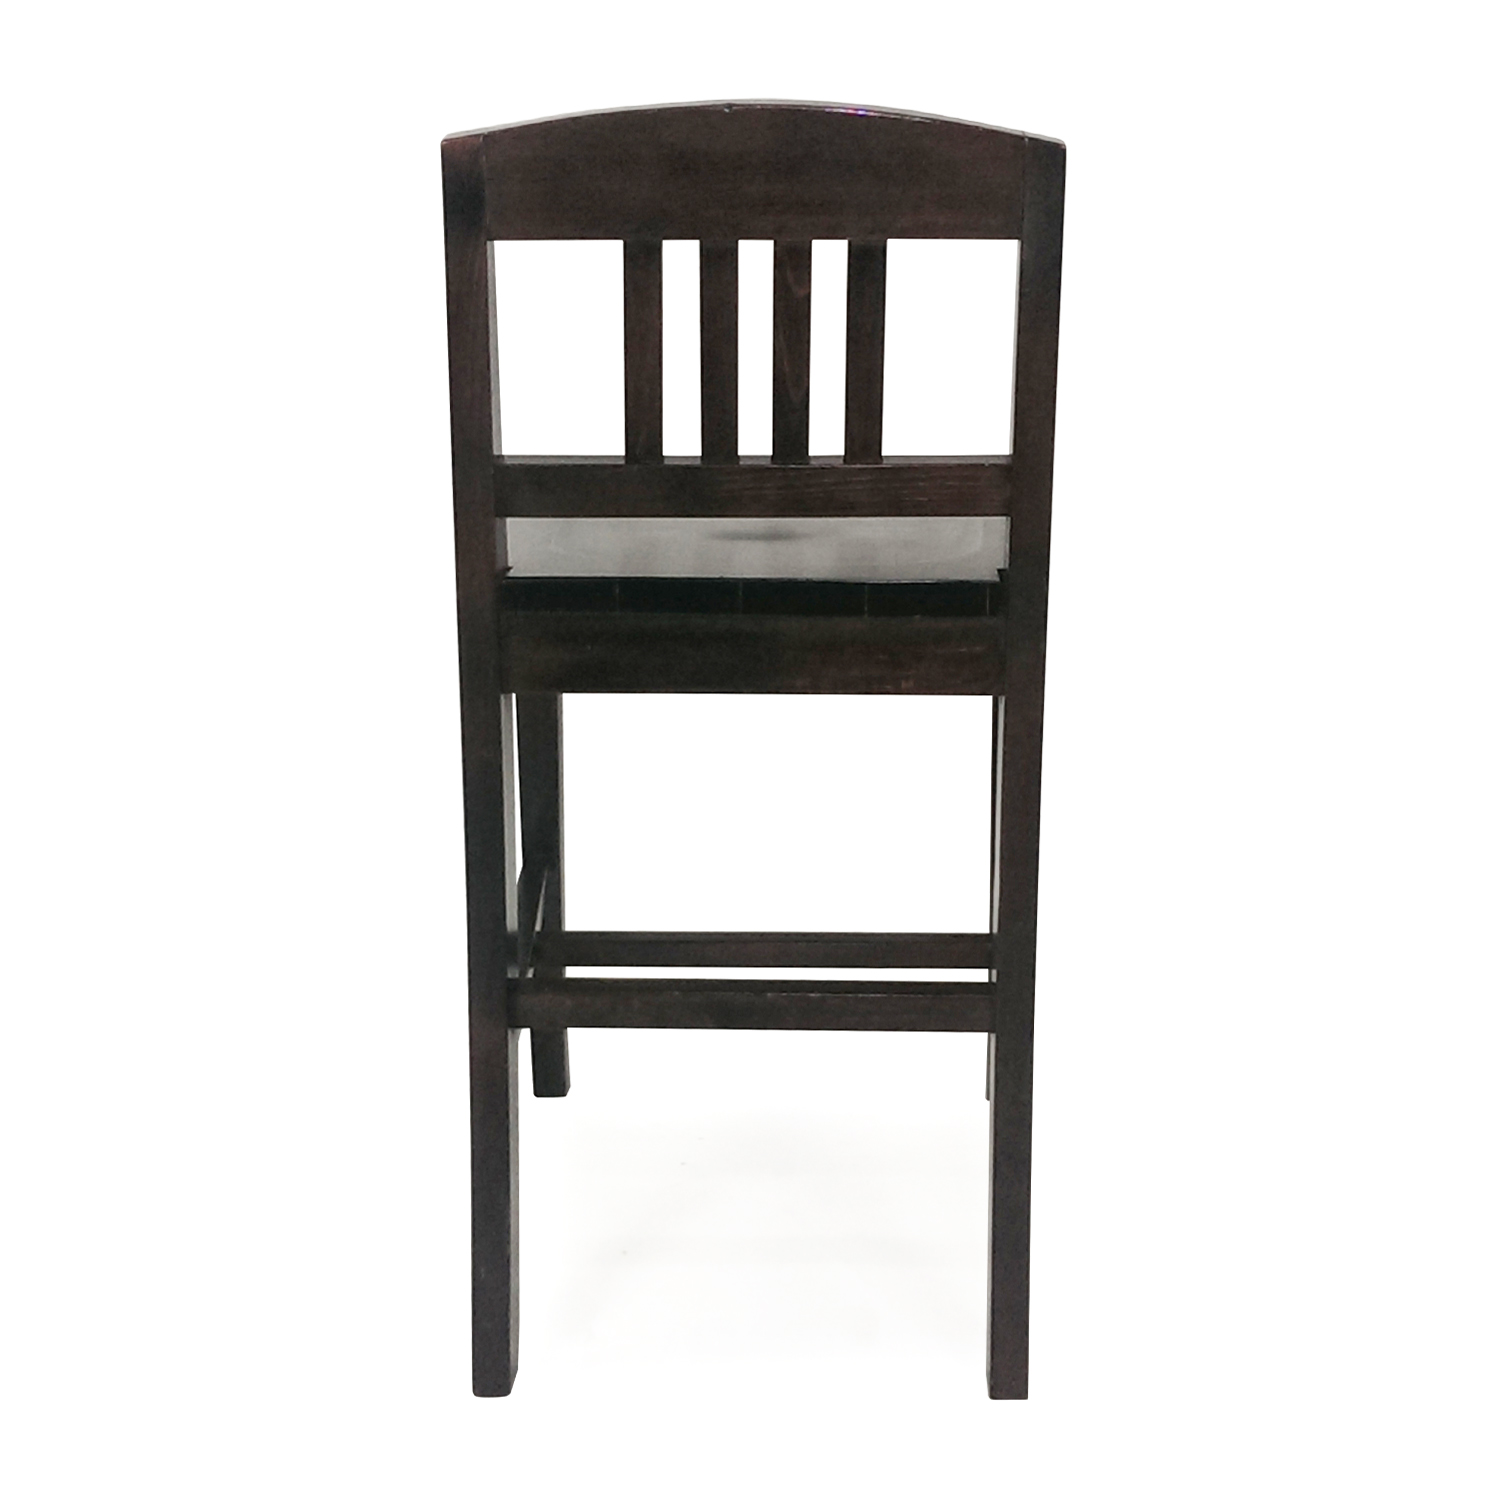 90% OFF Designer Cello or Piano Chair Chairs